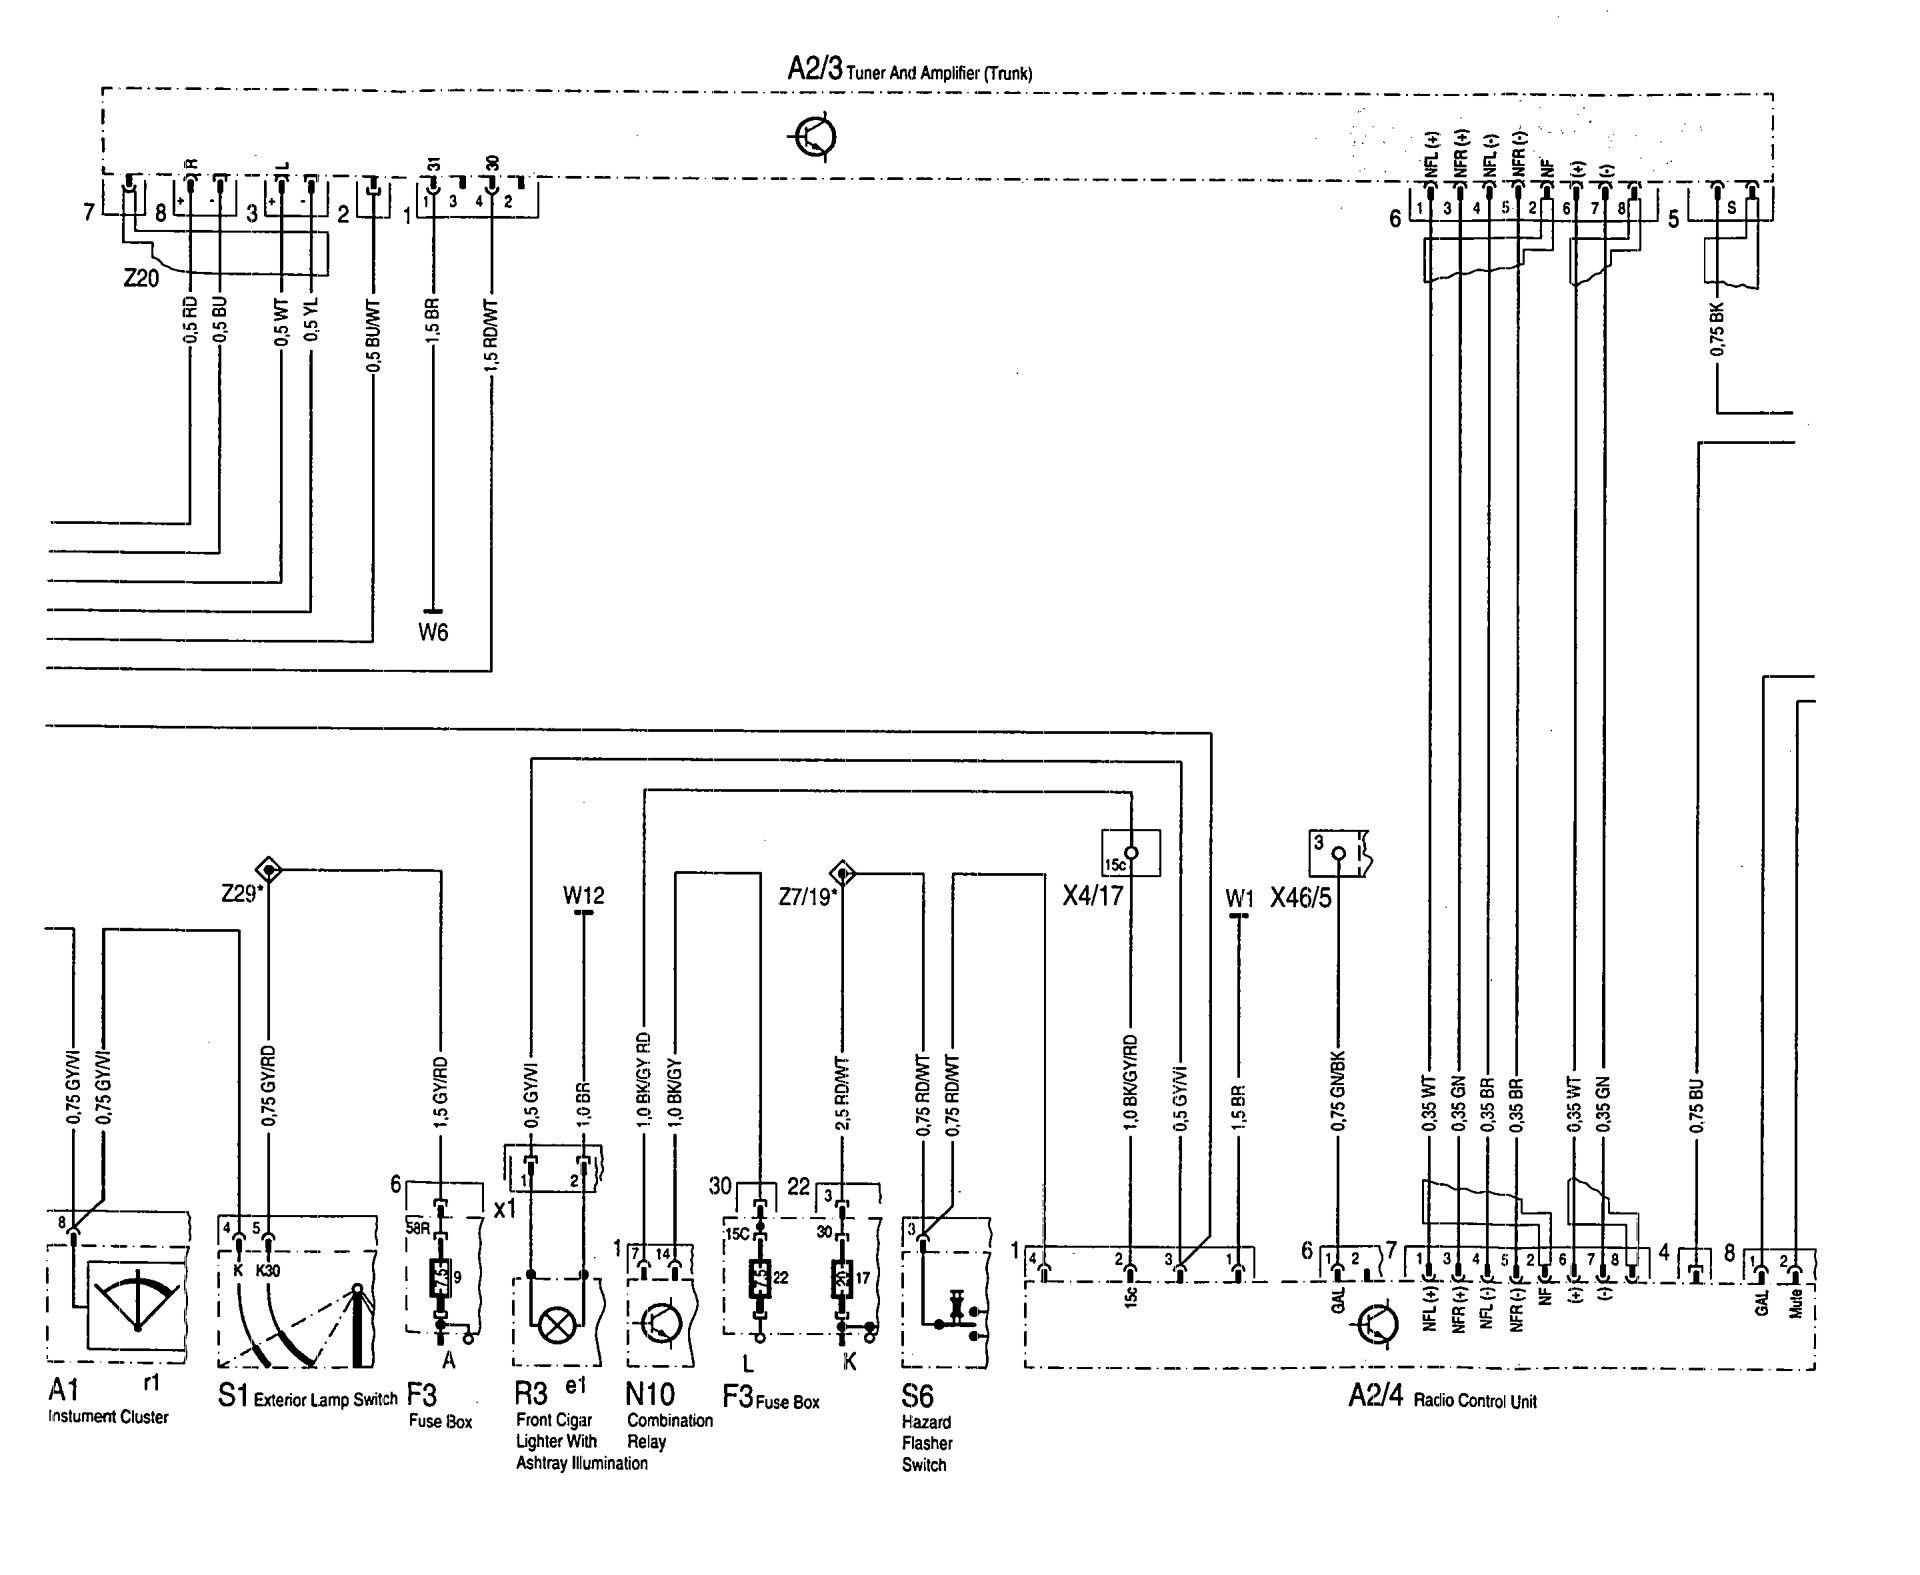 Wiring Diagram Mercedes Vito : Mercedes benz sl wiring diagrams audio